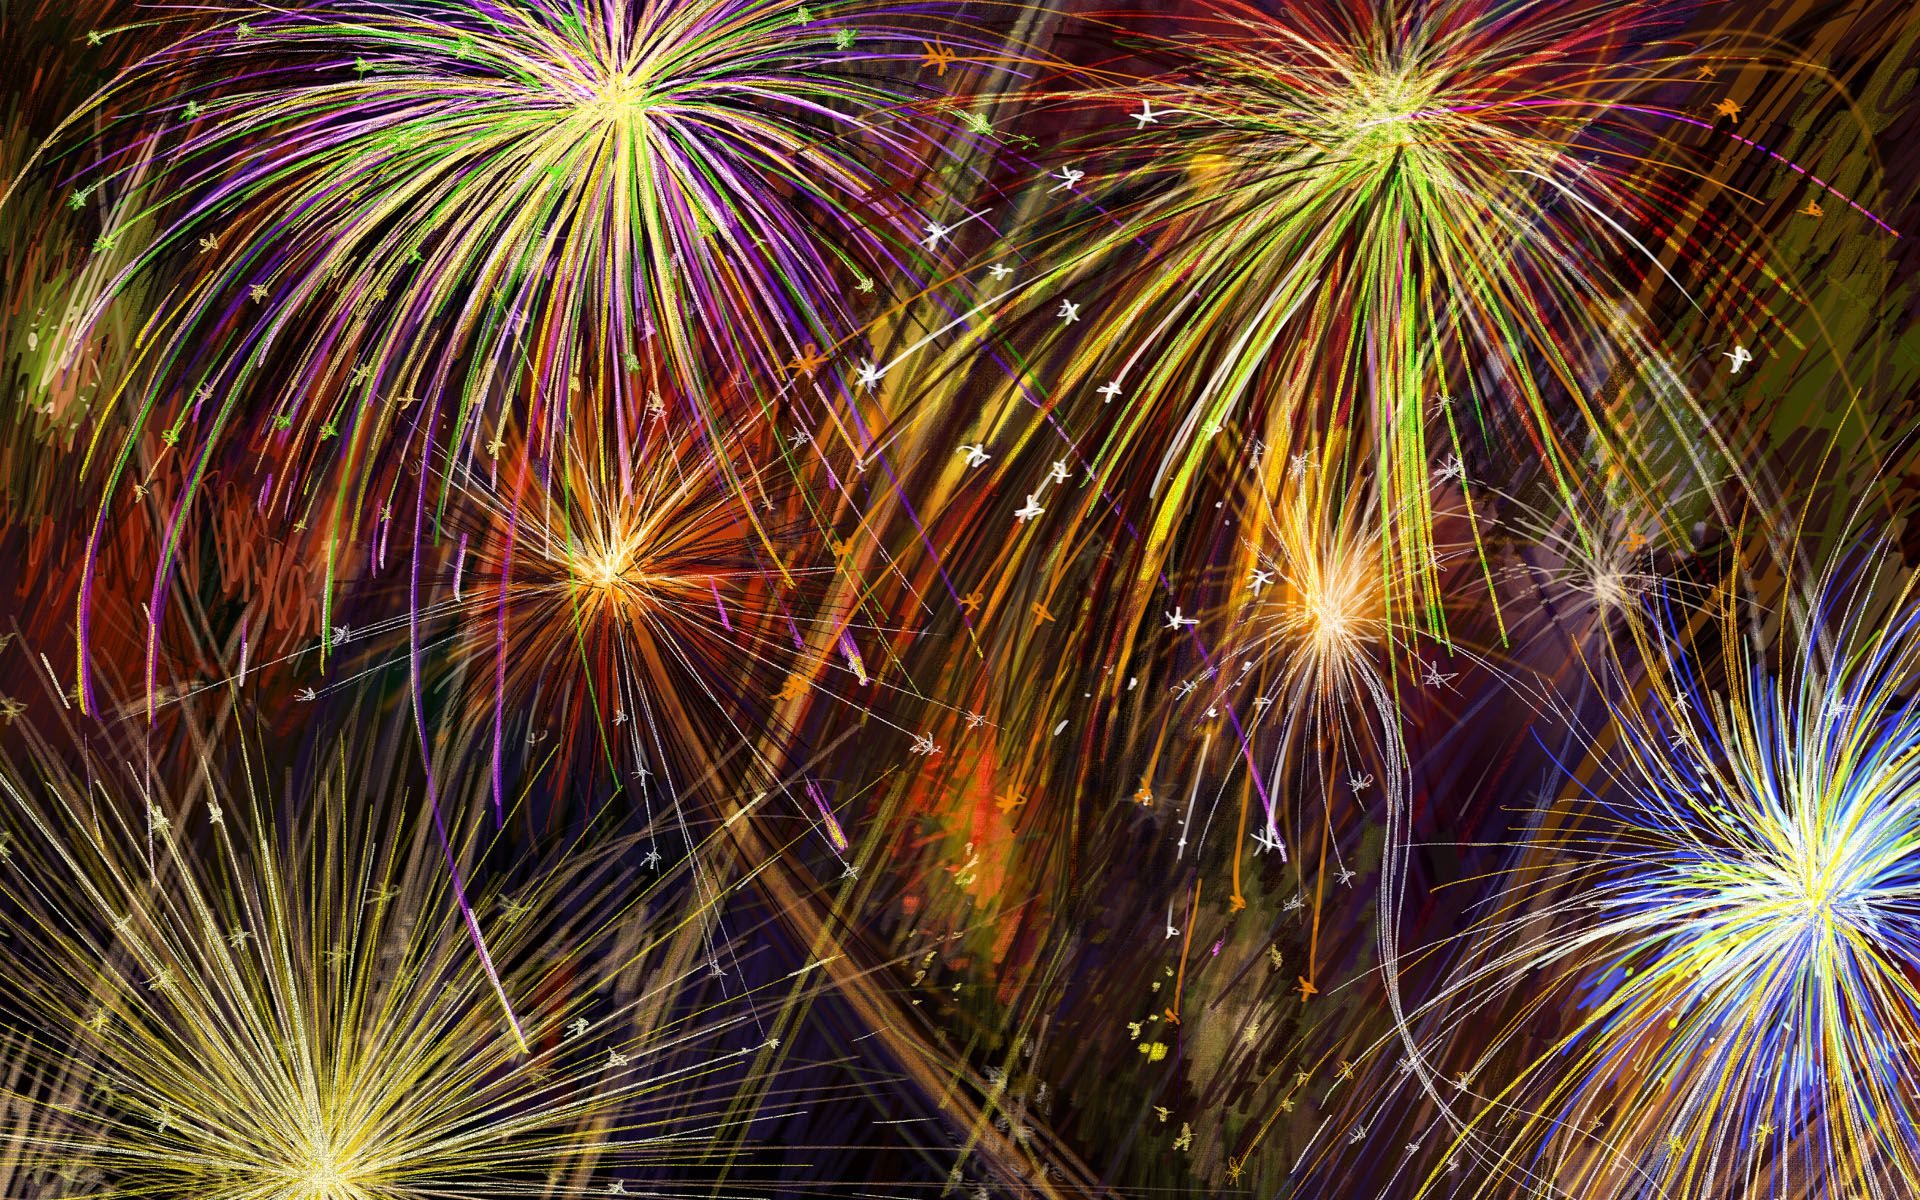 D Fireworks Wallpaper Free Android Apps on Google Play 500—500